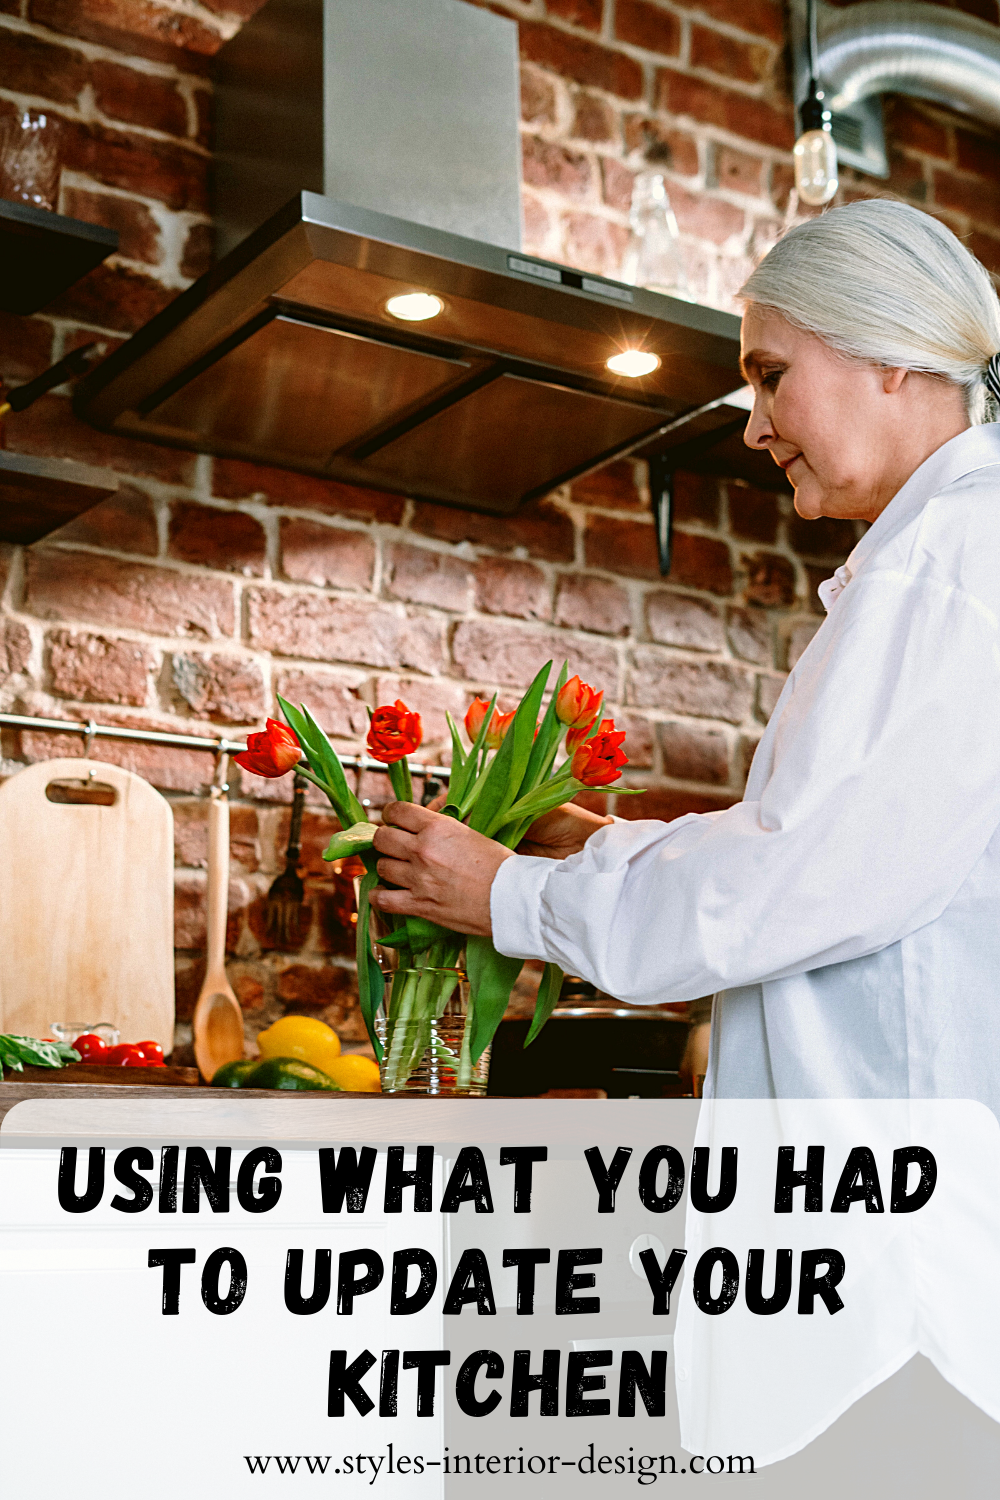 Using What You Had to Update Your kitchen when you transformed the kitchen to update you can use a mix of three things revamped, recycled items, & buy on a budget. when you start to work on your kitchen with existing layout & old unite you can use to date your kitchen to save money just with a personal touch to make kitchen welcoming space just with limited funds. #kitchen #datekitchen #budget #savemoney #recyled #buy #online #cheap #remodeling #kitchenremodeling #homedecor #kitchendecor #cooker